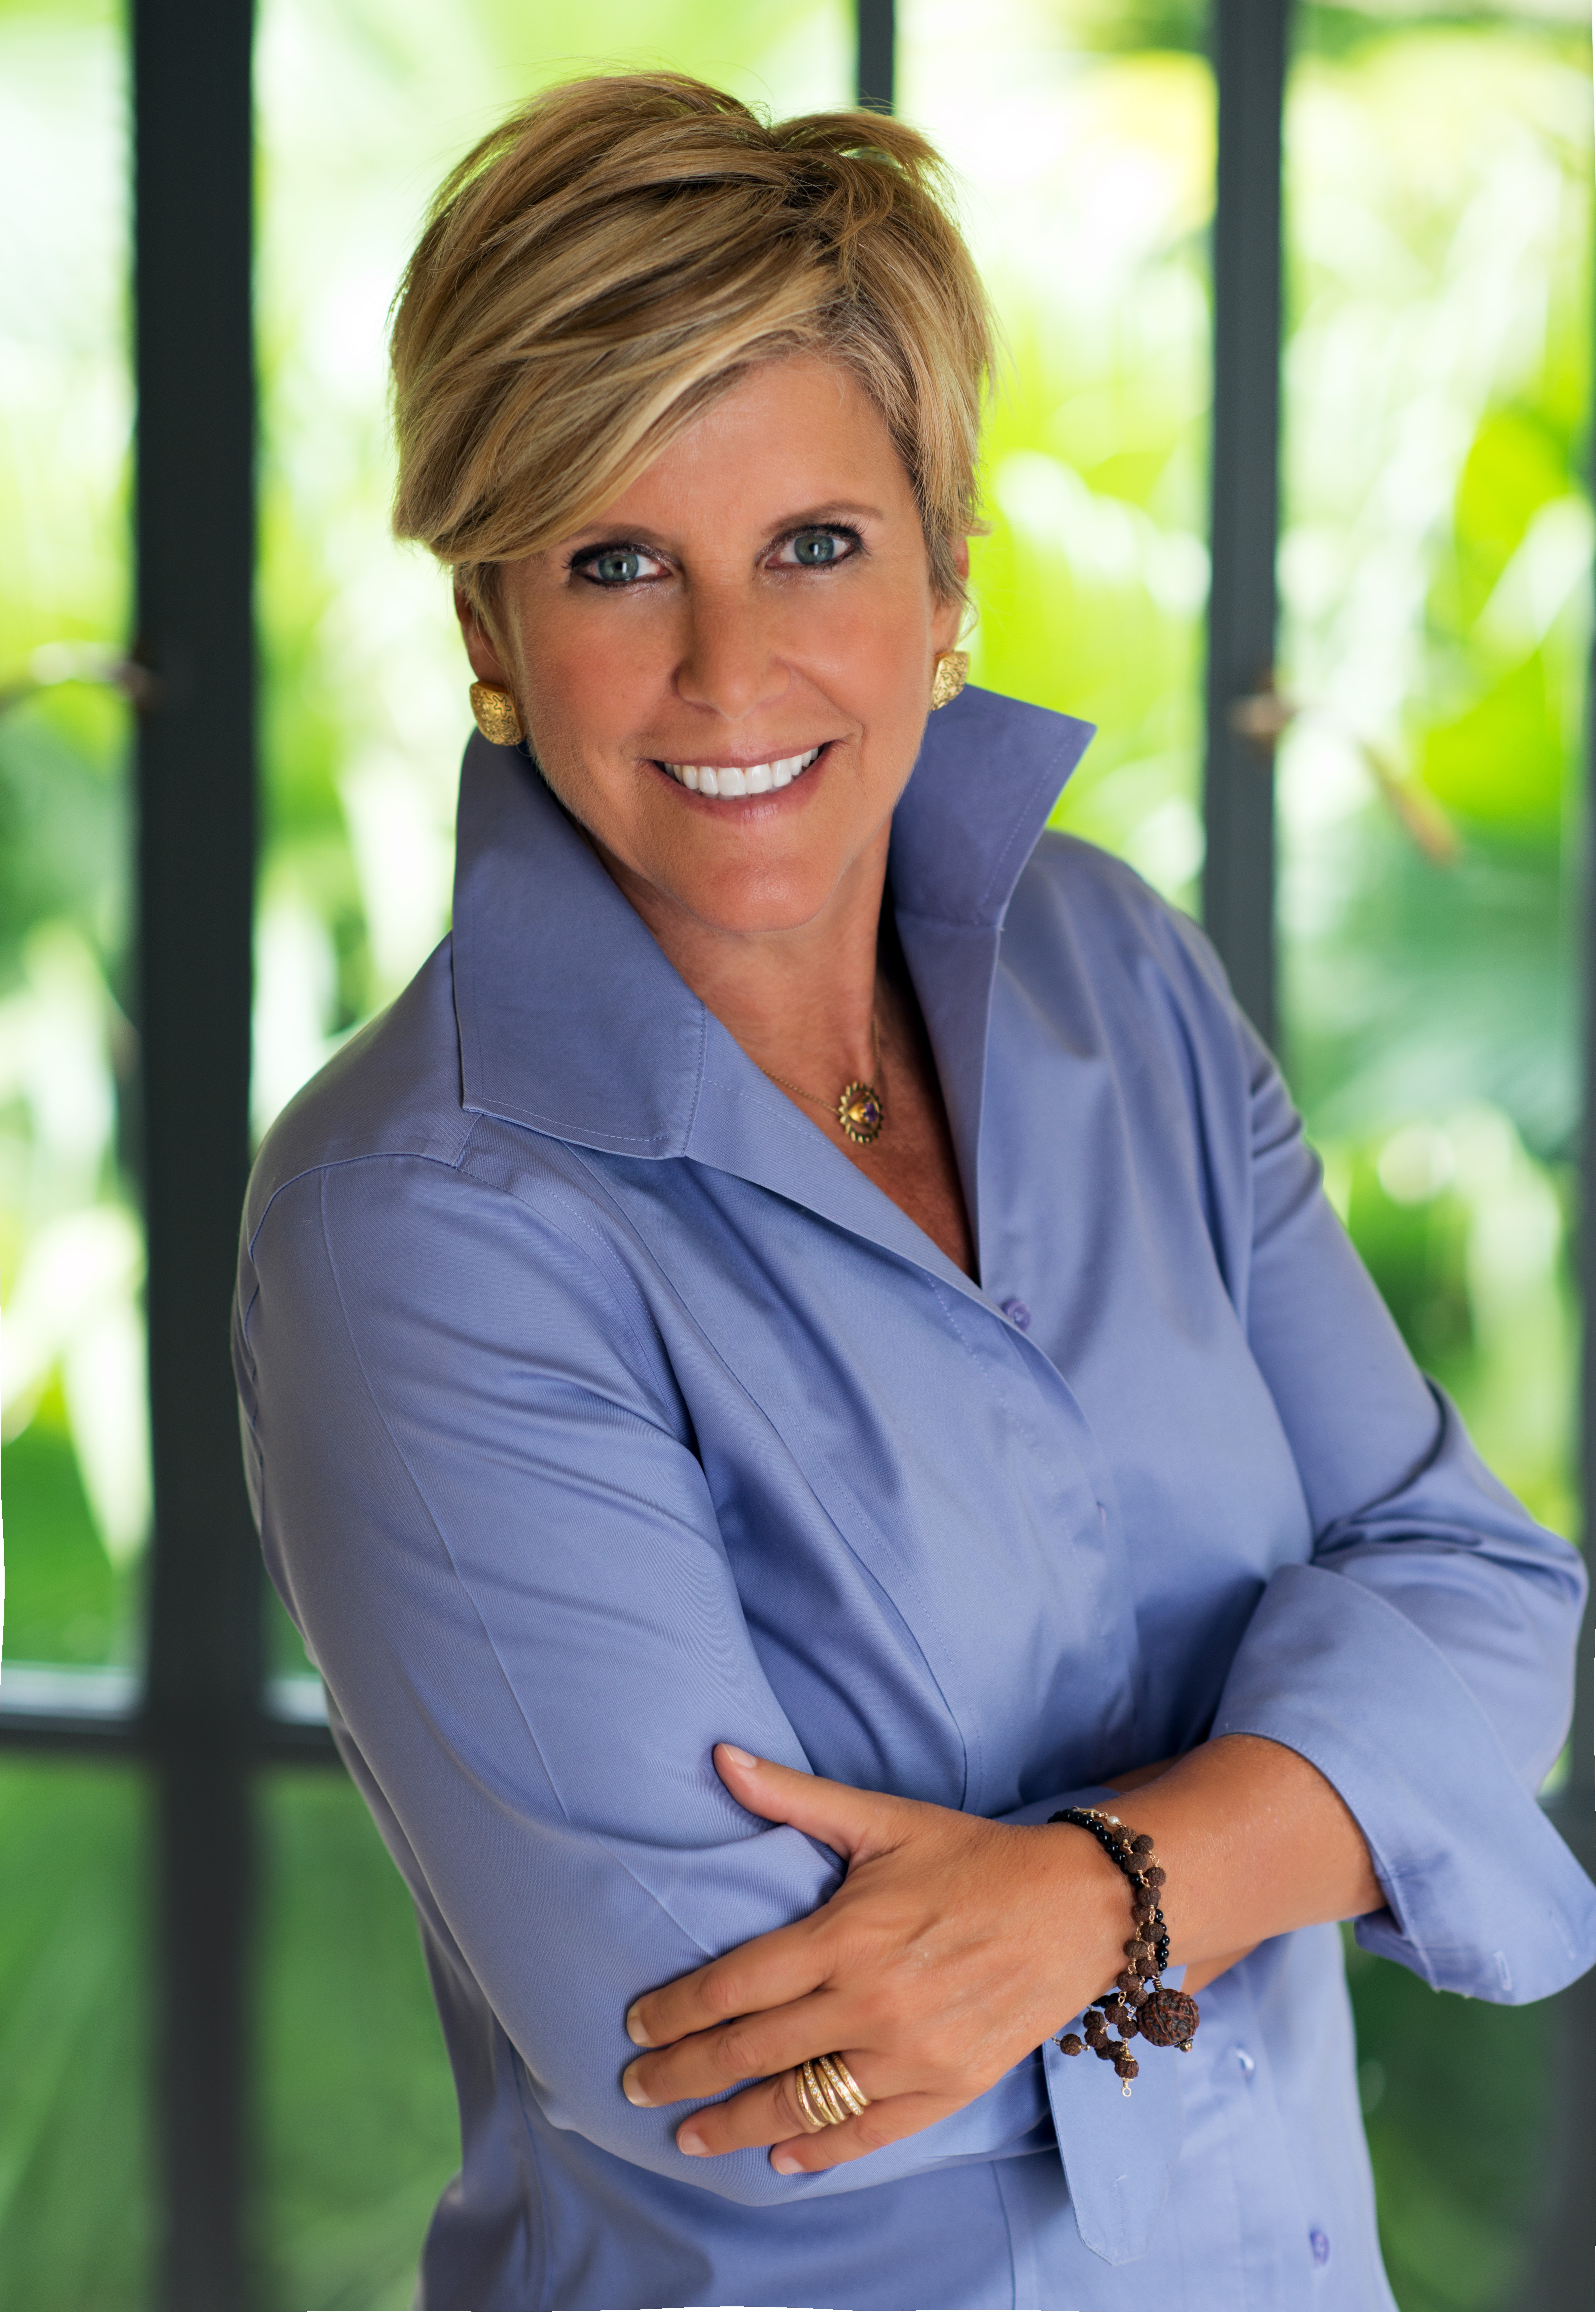 Alison Sweeney Oops ex-spouse benefits and you | social security matters